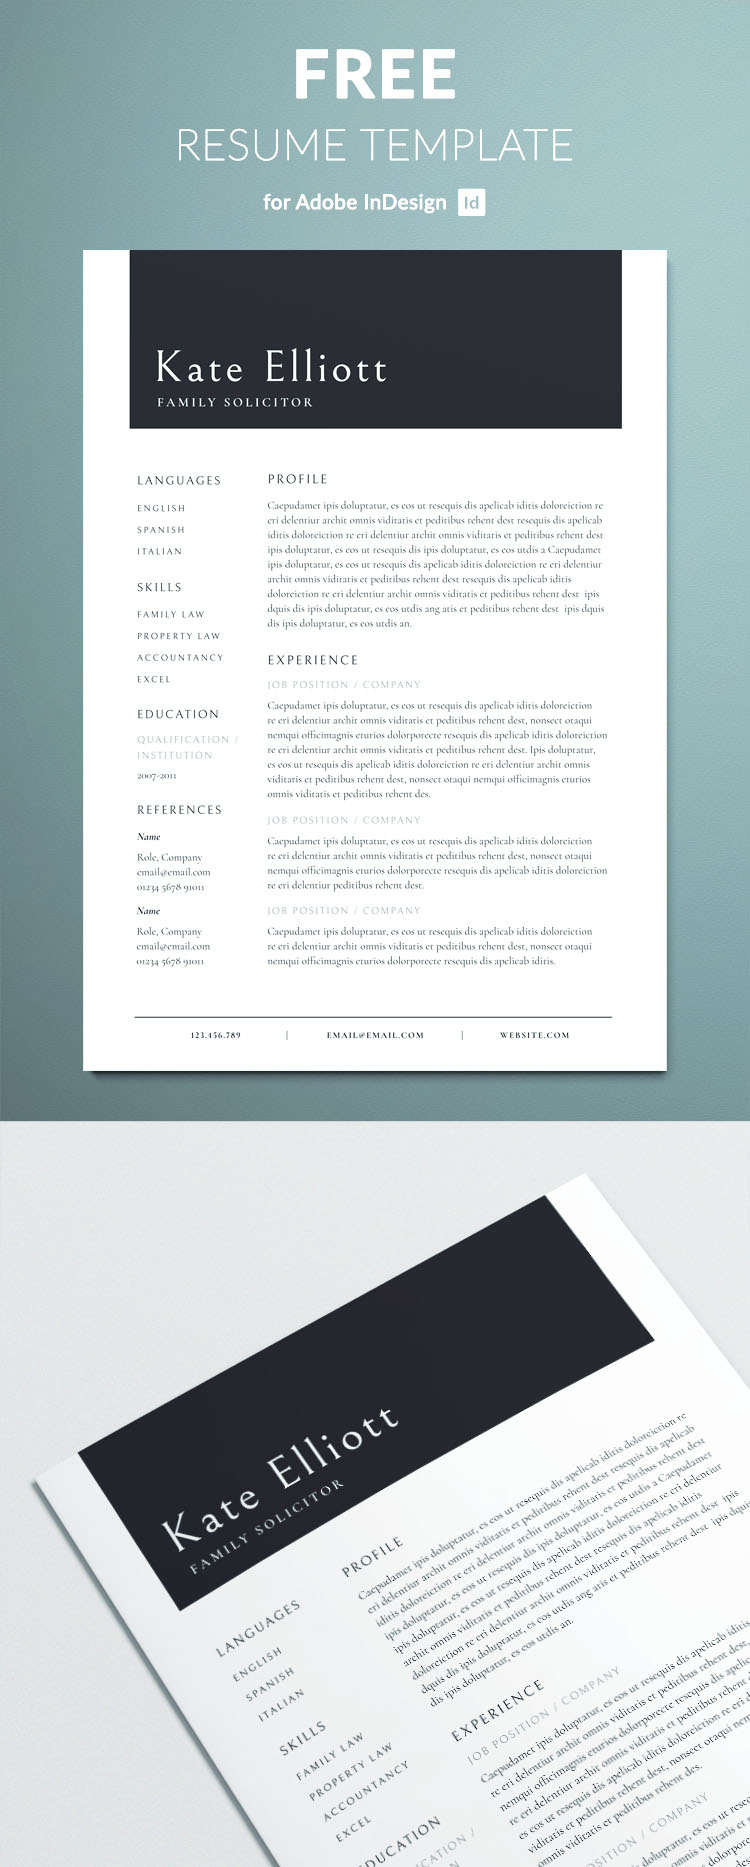 Professional resume template for InDesign - Free Download - Professionally created layout